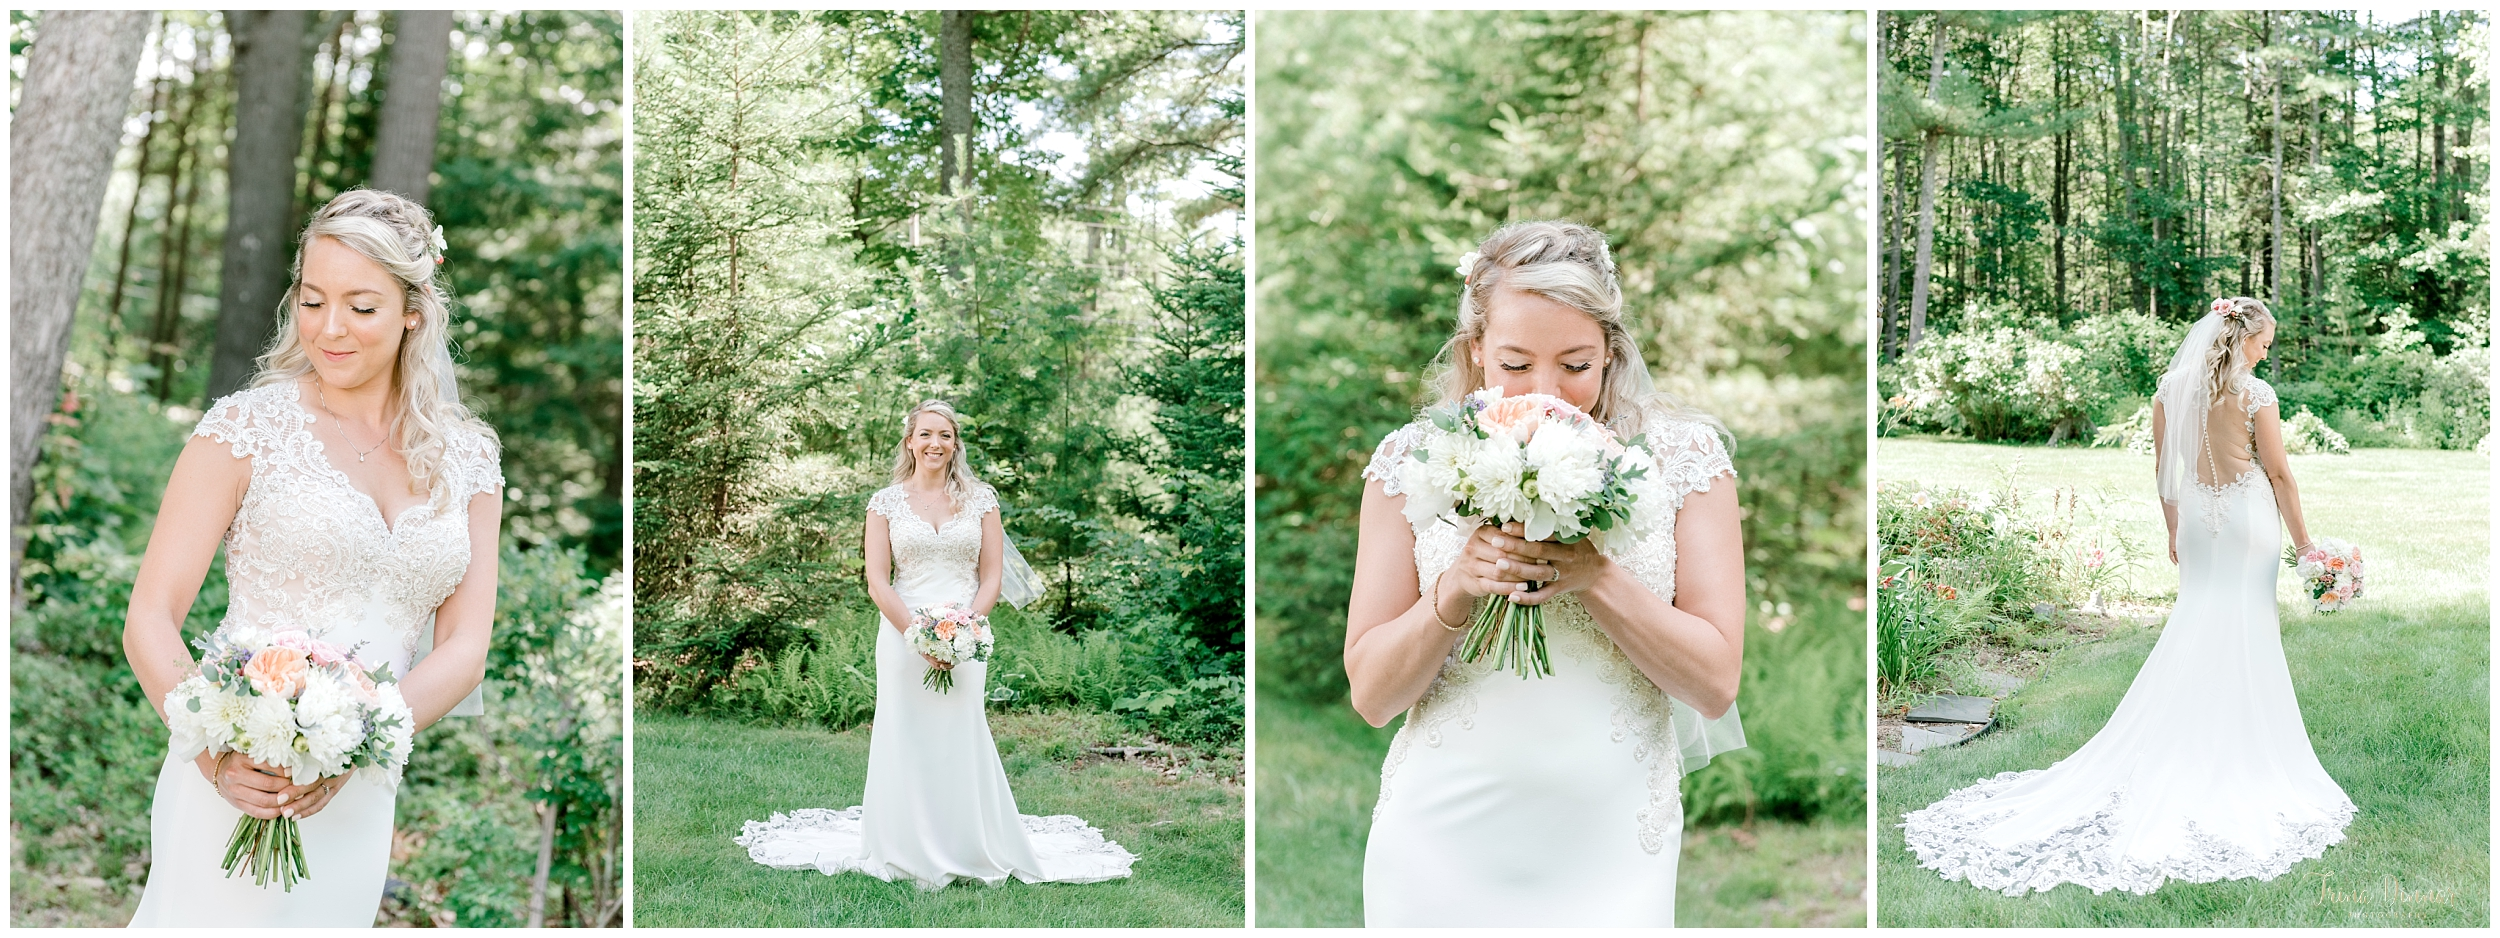 Maine Wedding Bride Portrait Photography in Scarborough